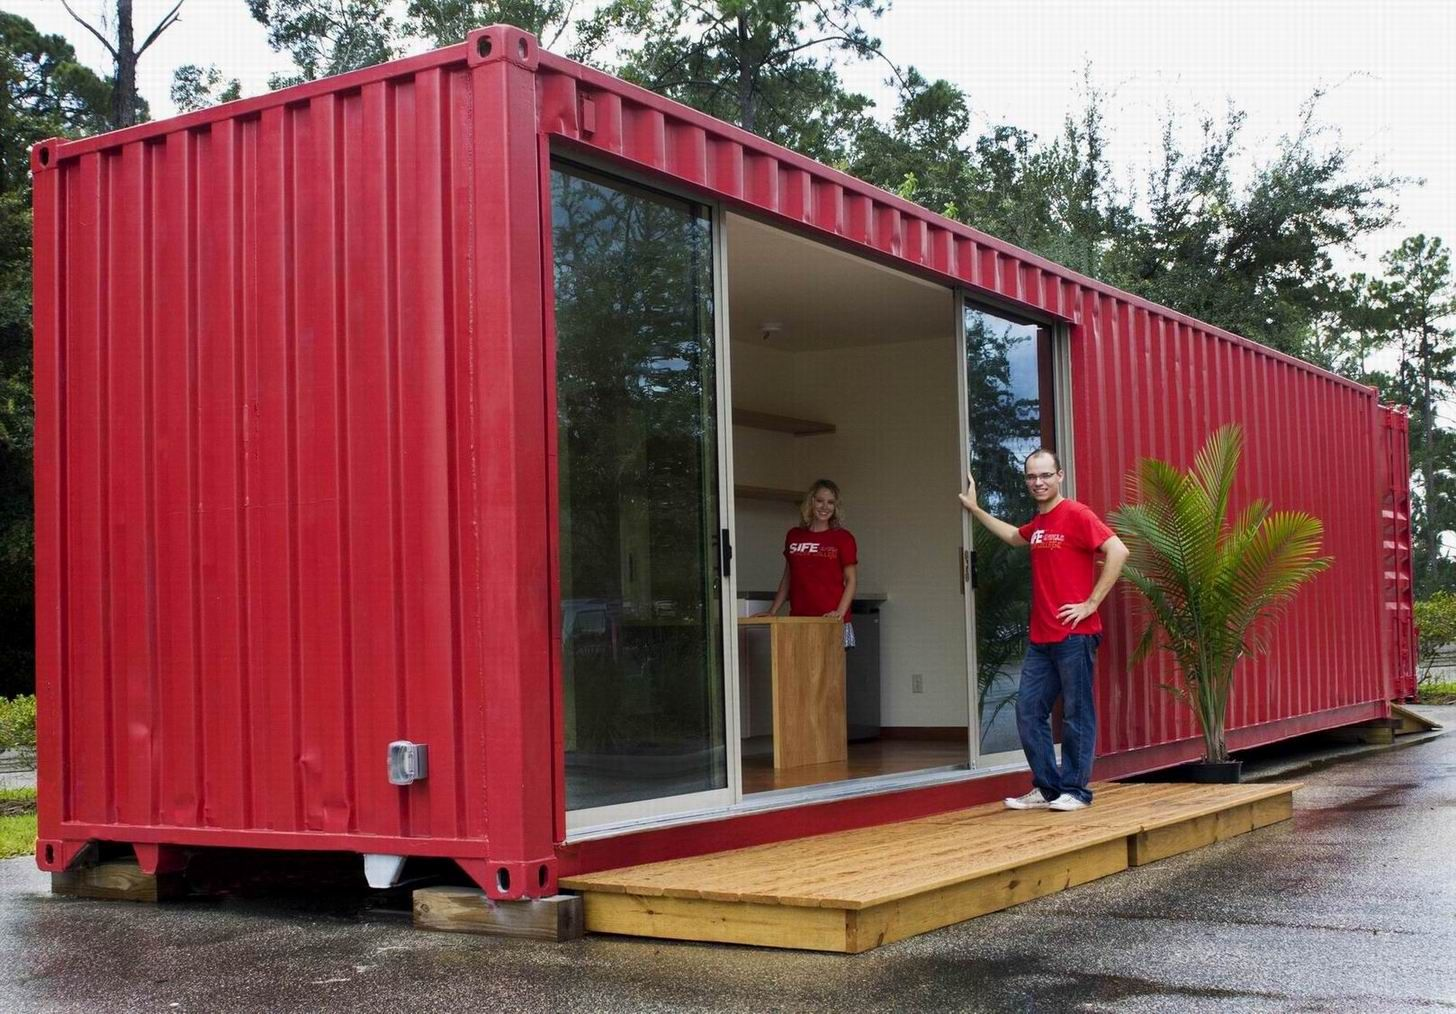 modular ship container remade into a home this is a new rave in. Black Bedroom Furniture Sets. Home Design Ideas